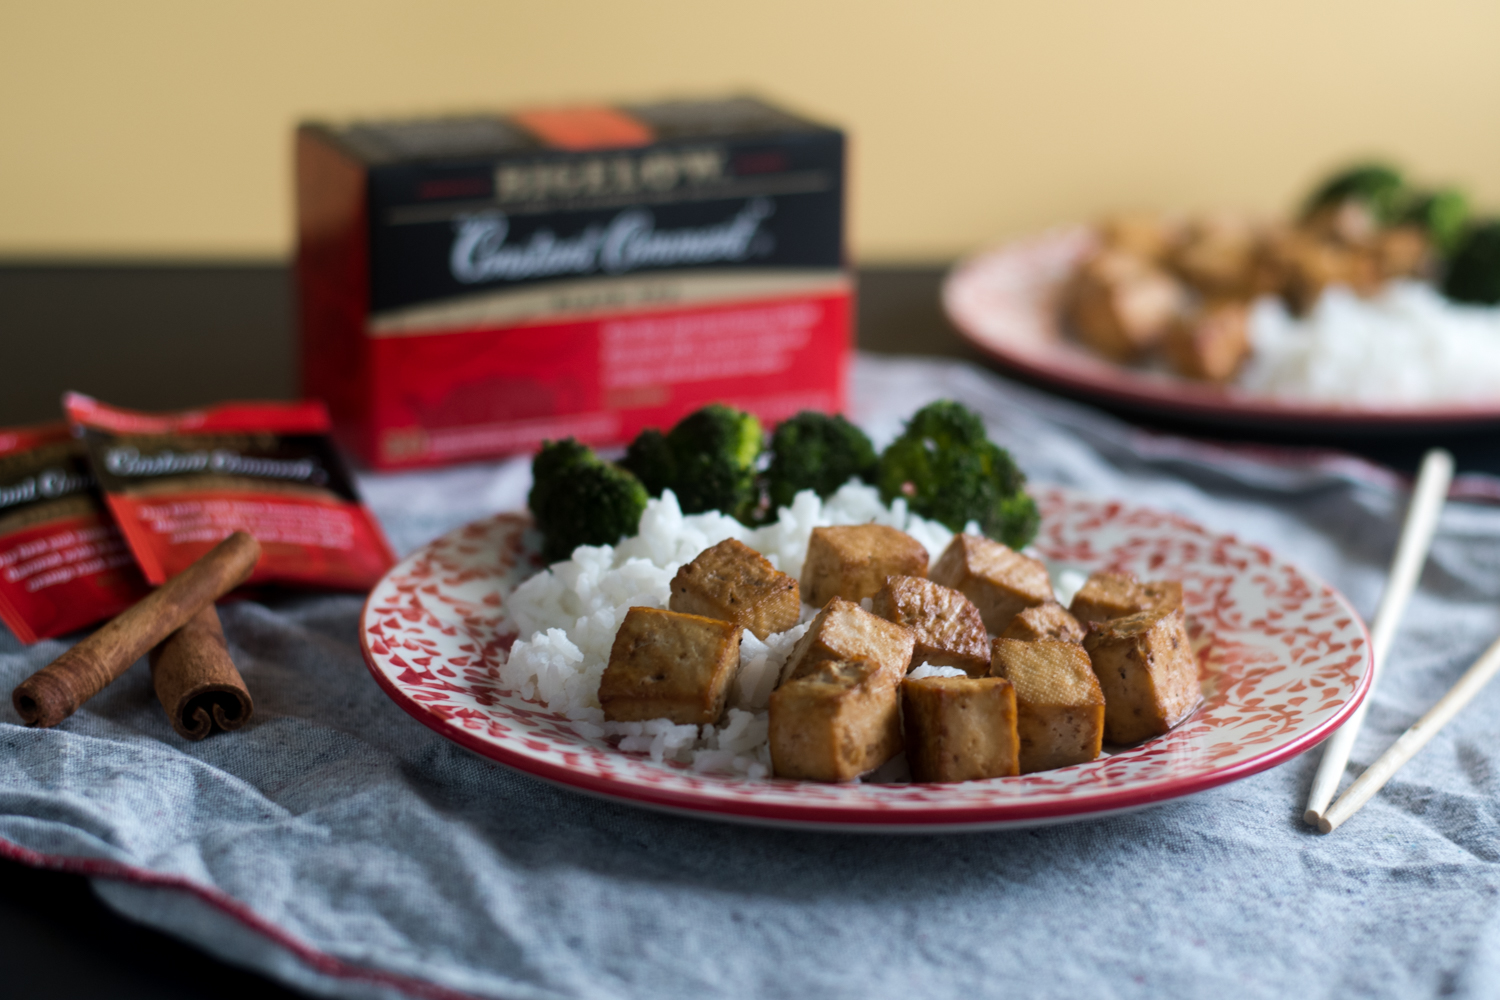 Tea makes a delicious marinade base for baked tofu. Quick & easy!